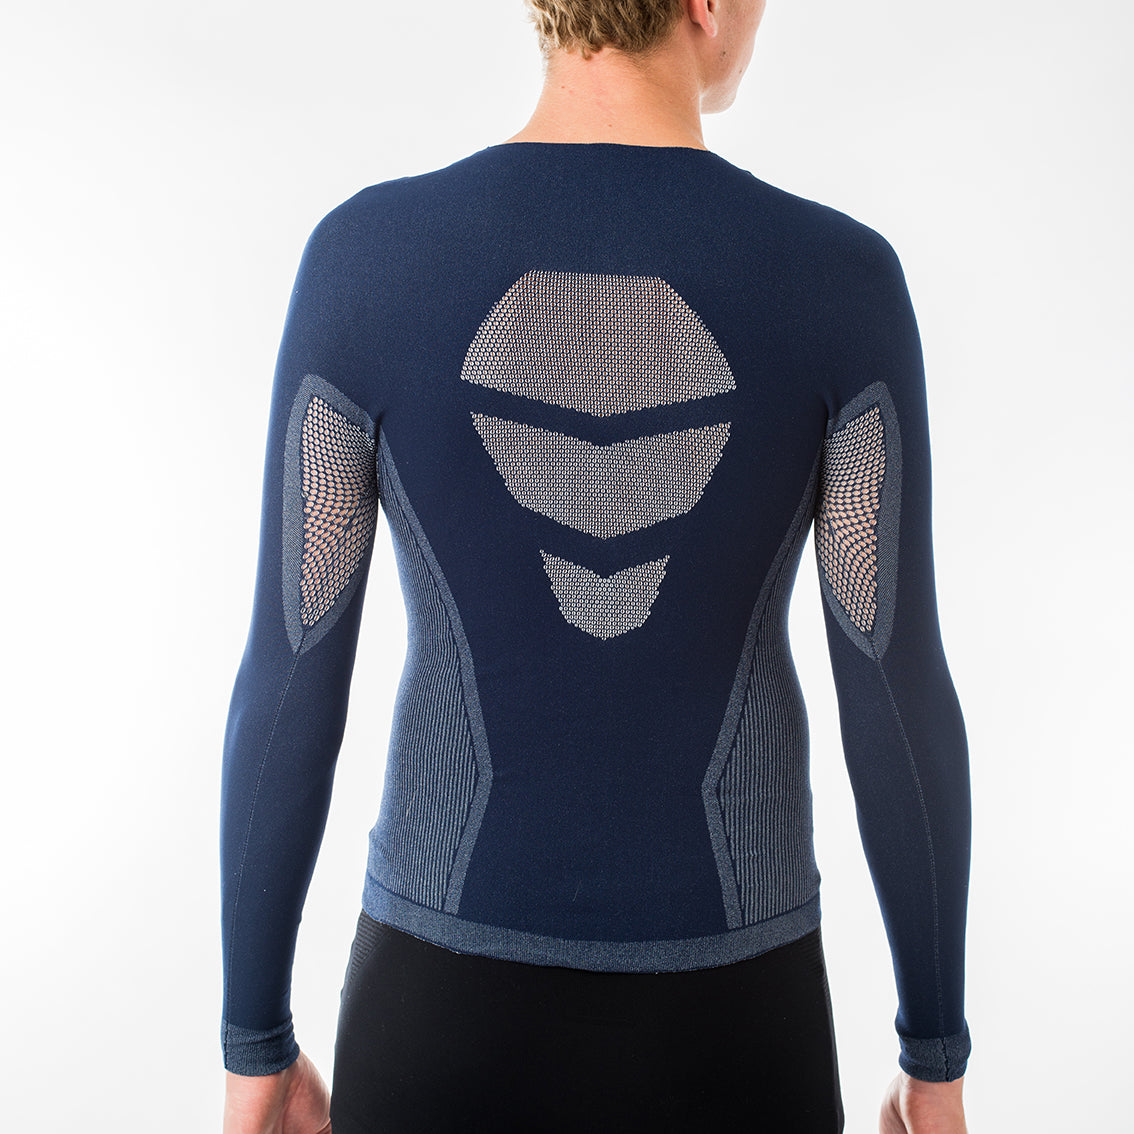 mens-drynamo-cycle-long-sleeve-base-layer-in-blue-and-white-back-of-base-layer